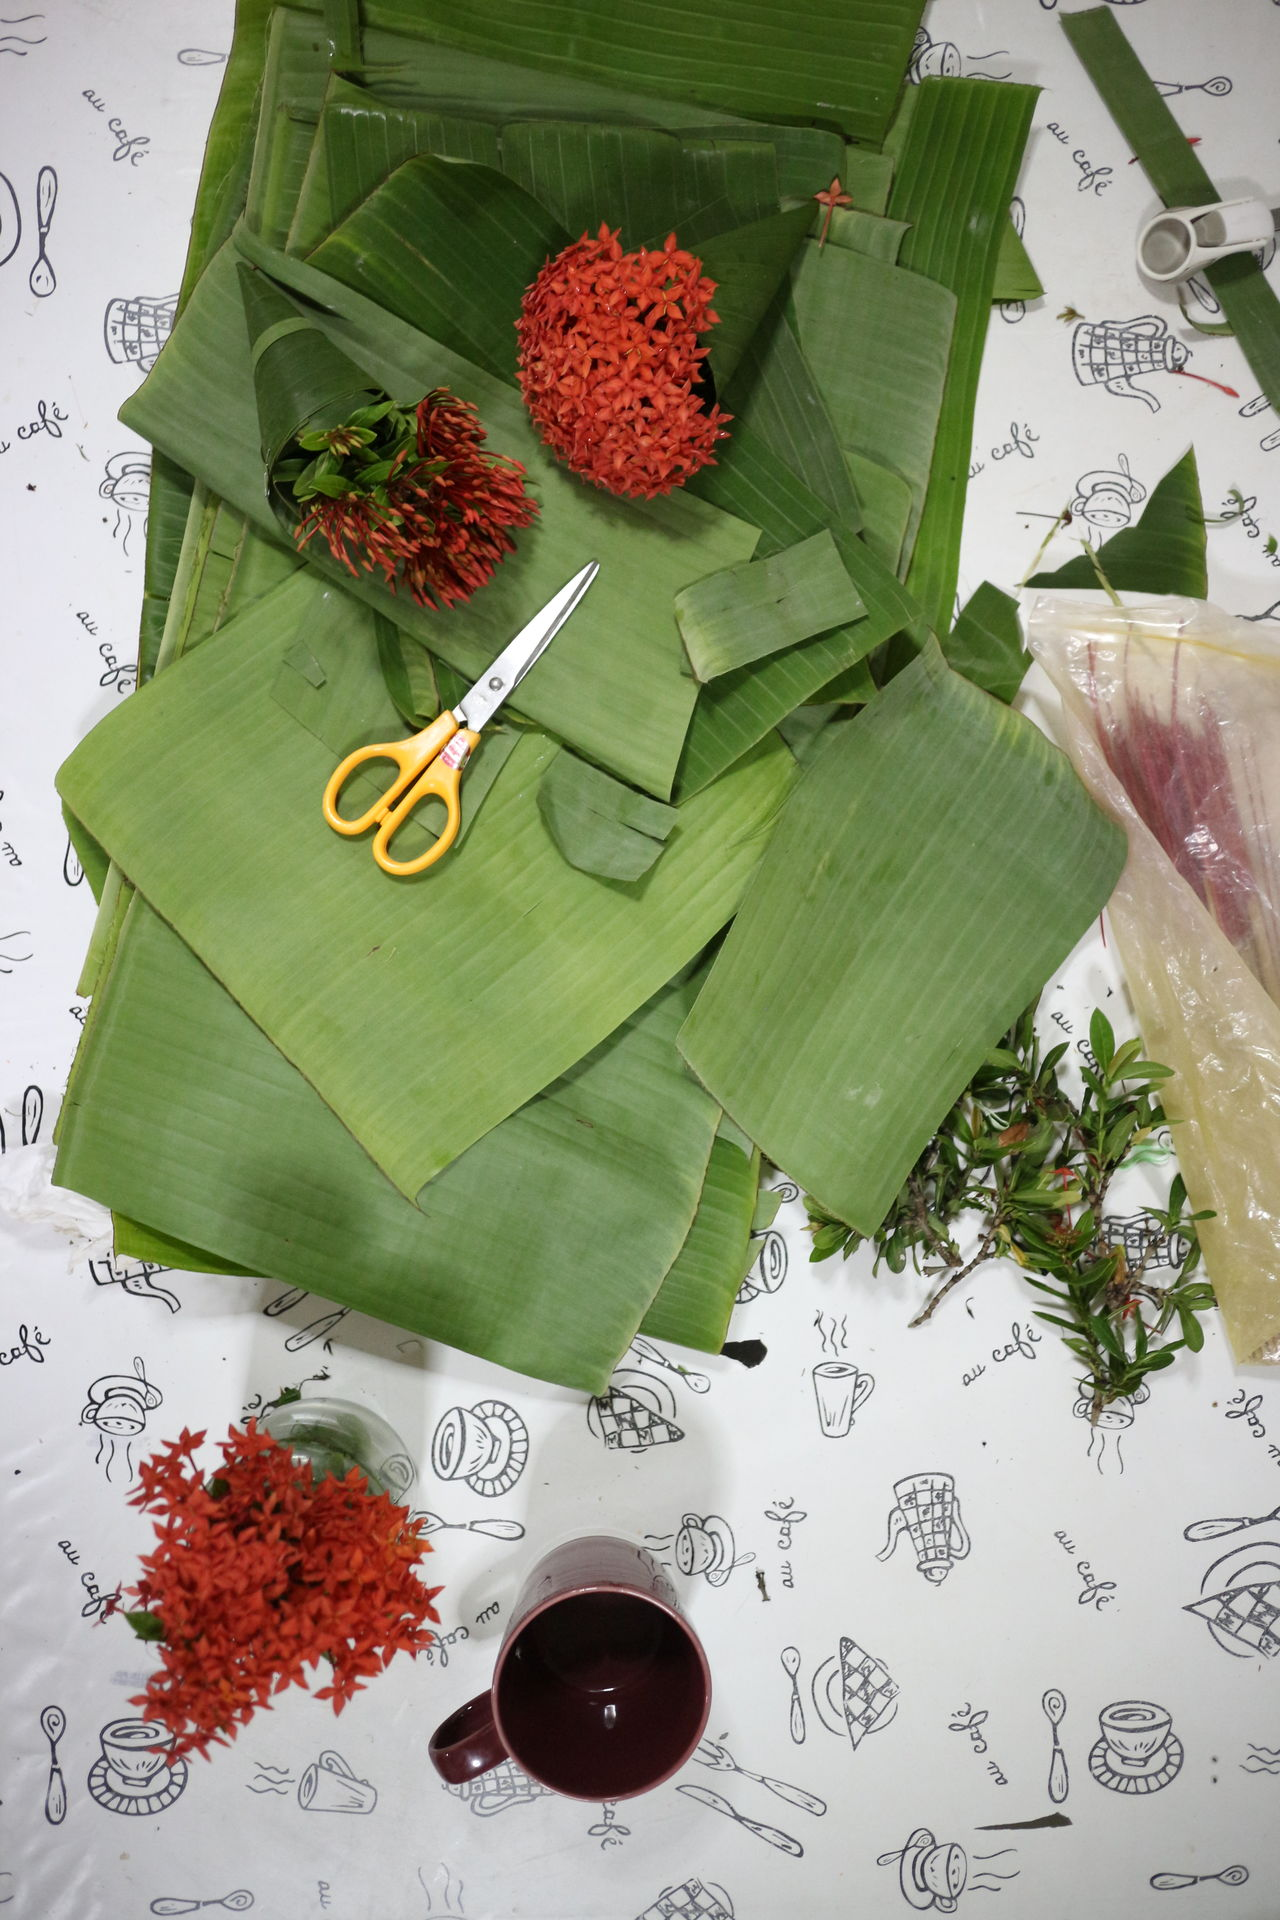 Banana Close-up Flower Food Freshness Healthy Eating High Angle View Indoors  Leaf No People Red Scissors Text